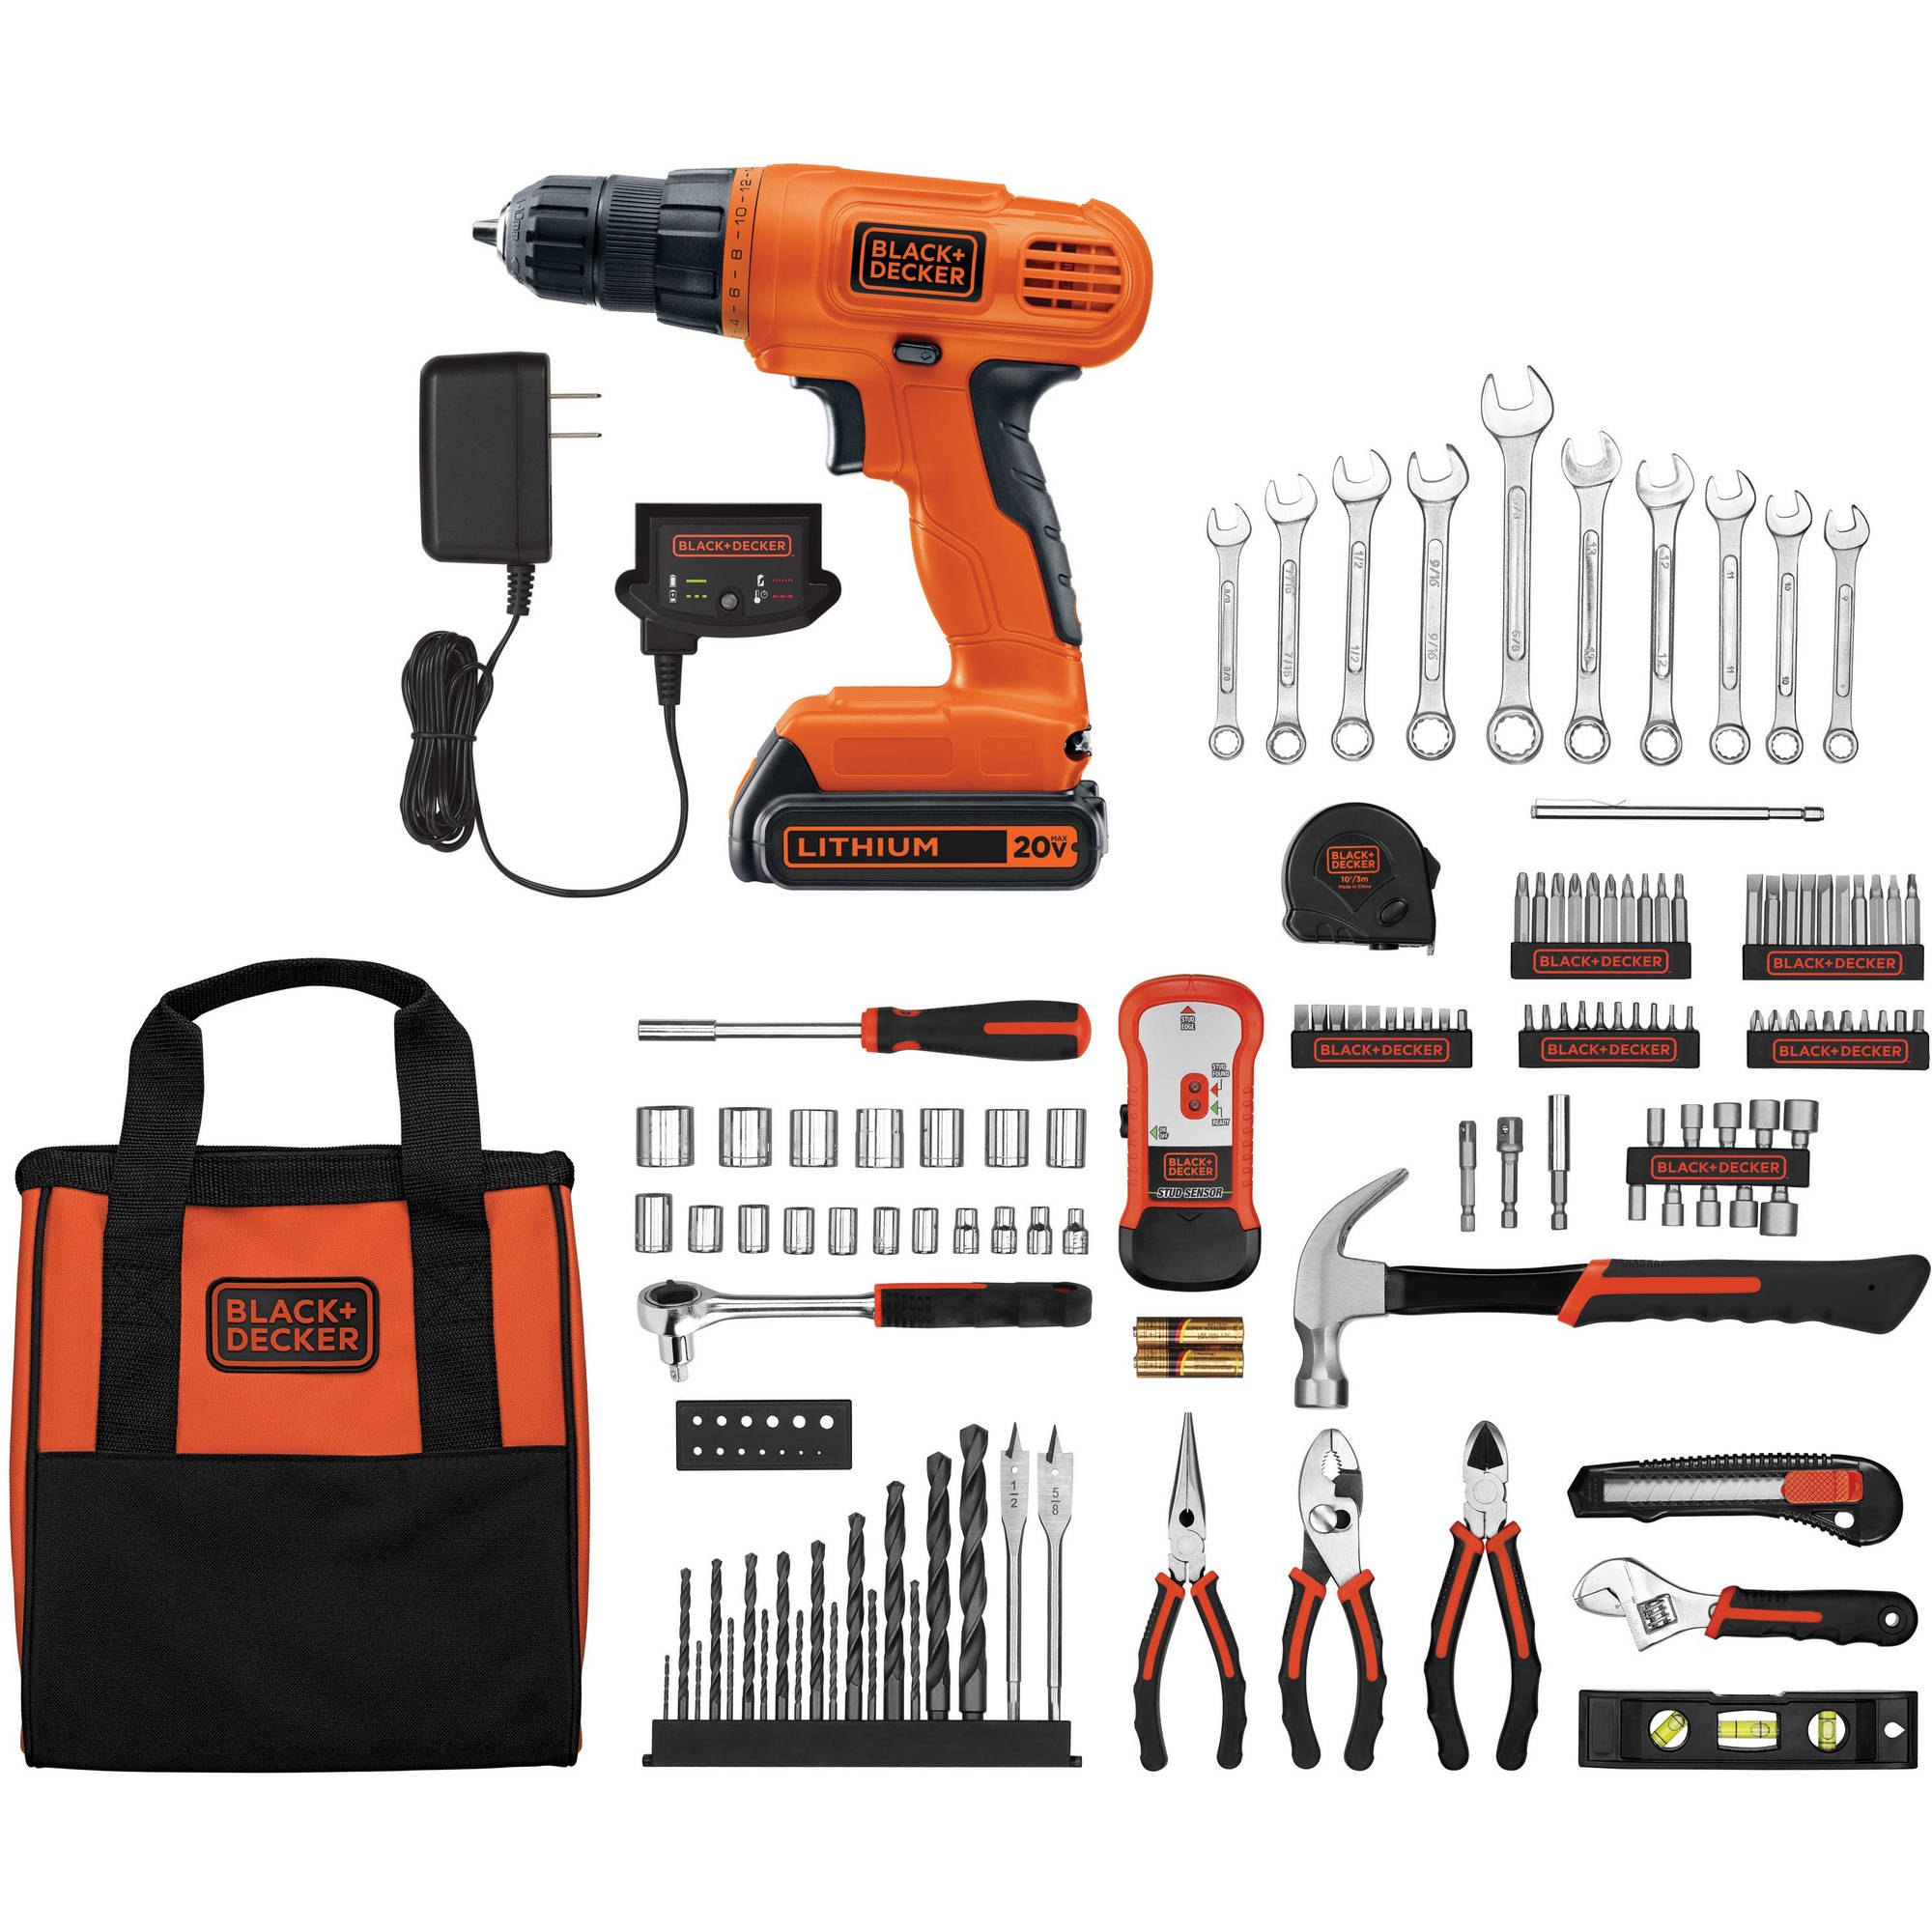 Black and decker home project kit 120